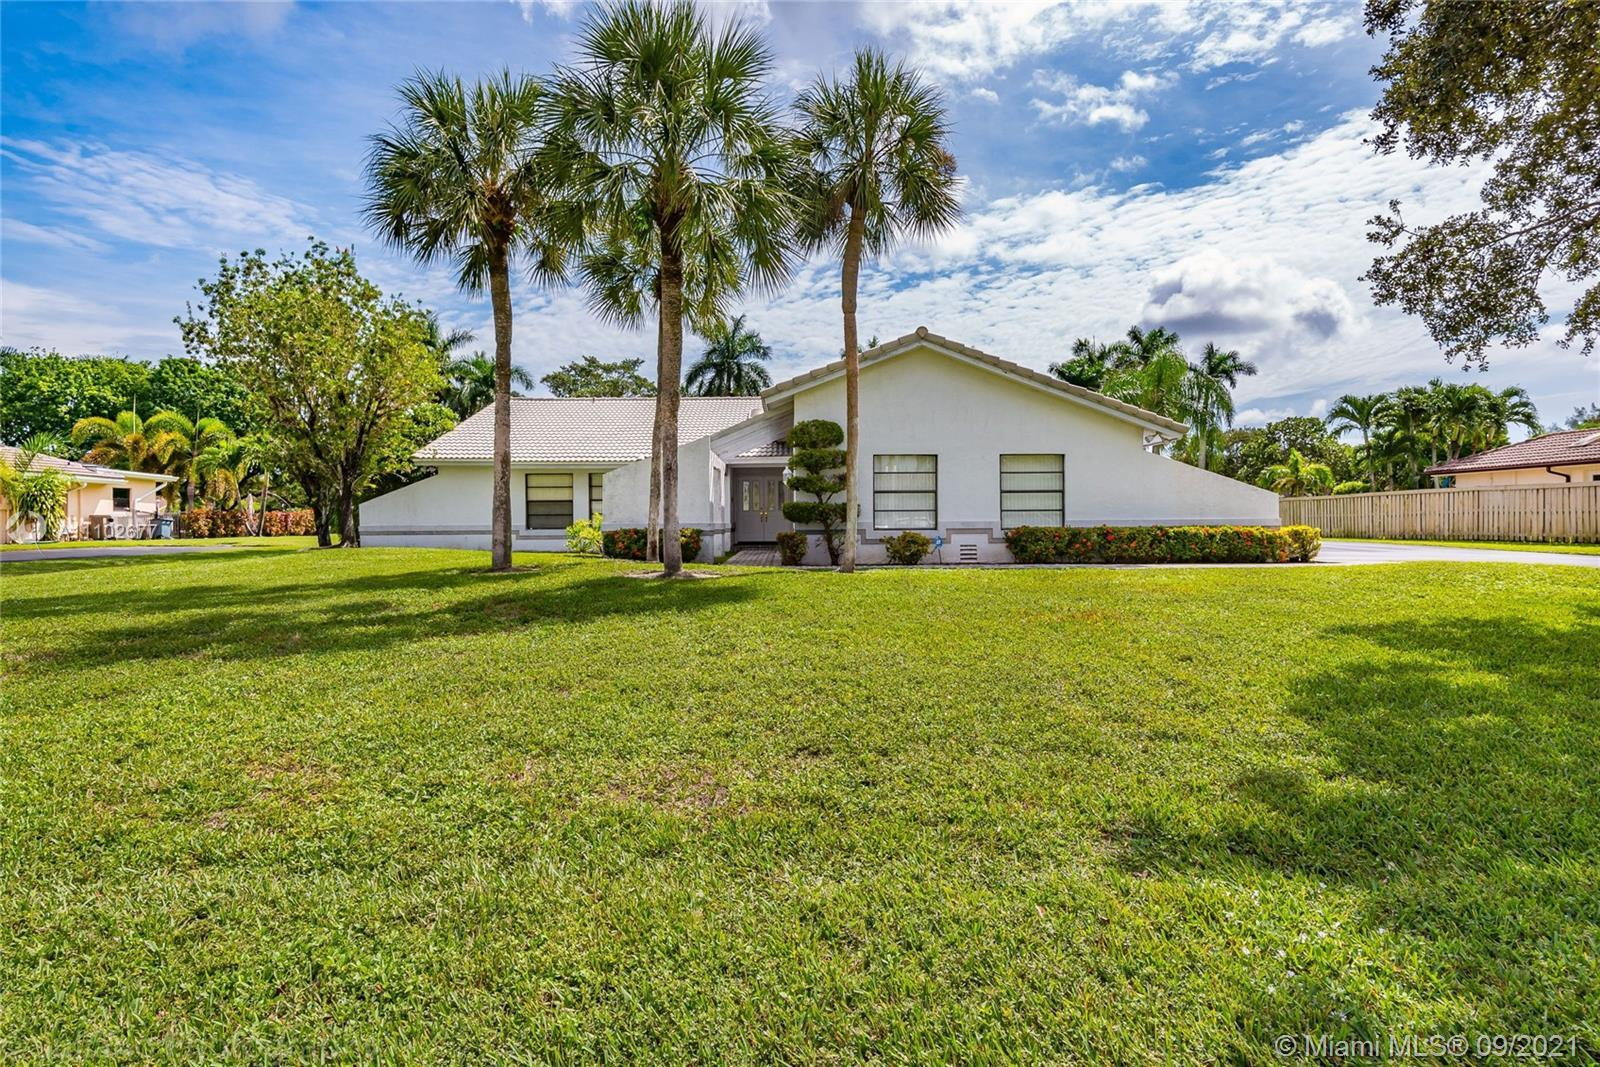 FIRST TIME ON THE MARKET IN 35 YEARS!!! THIS SUPER CLEAN HOME IS READY FOR ITS NEW FAMILY. LOCATED I